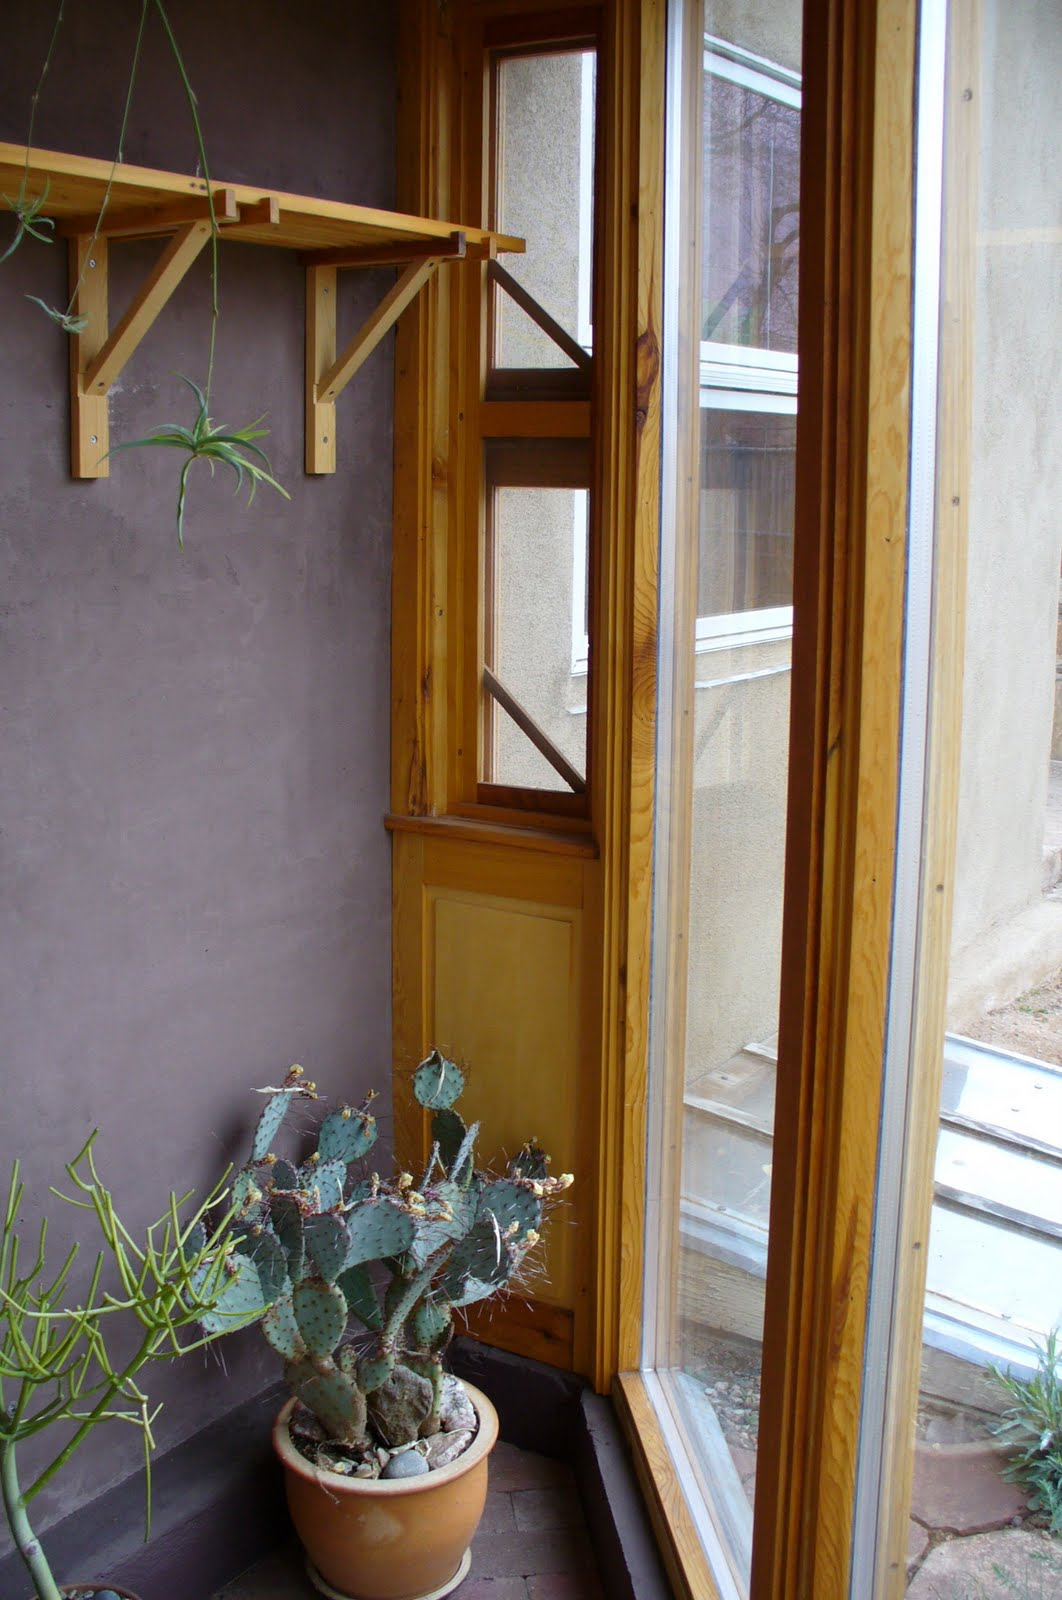 kitchen greenhouse window 3 piece table alt build blog passive solar 2 trombe walls and a